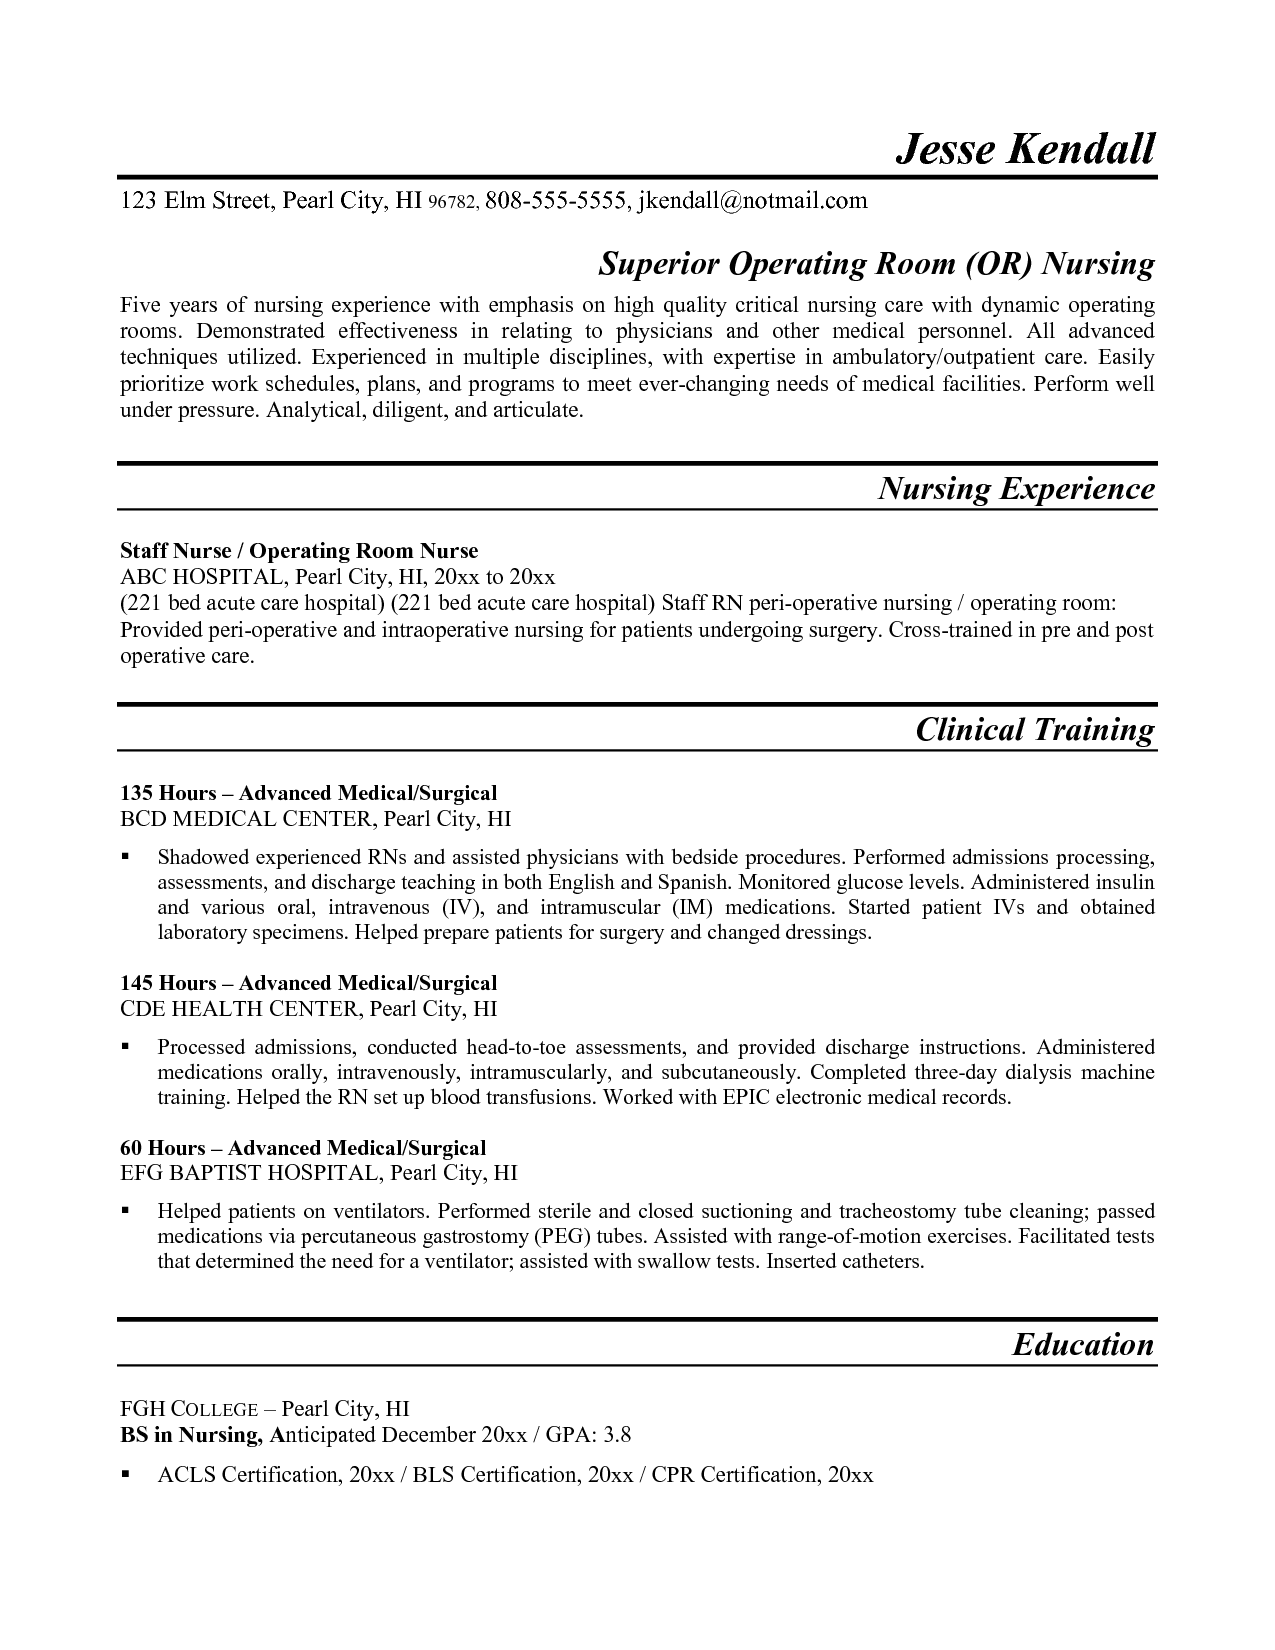 How To Set Up A Resume Magnificent Operating Room Nurse Resume  Httpwwwresumecareeroperating